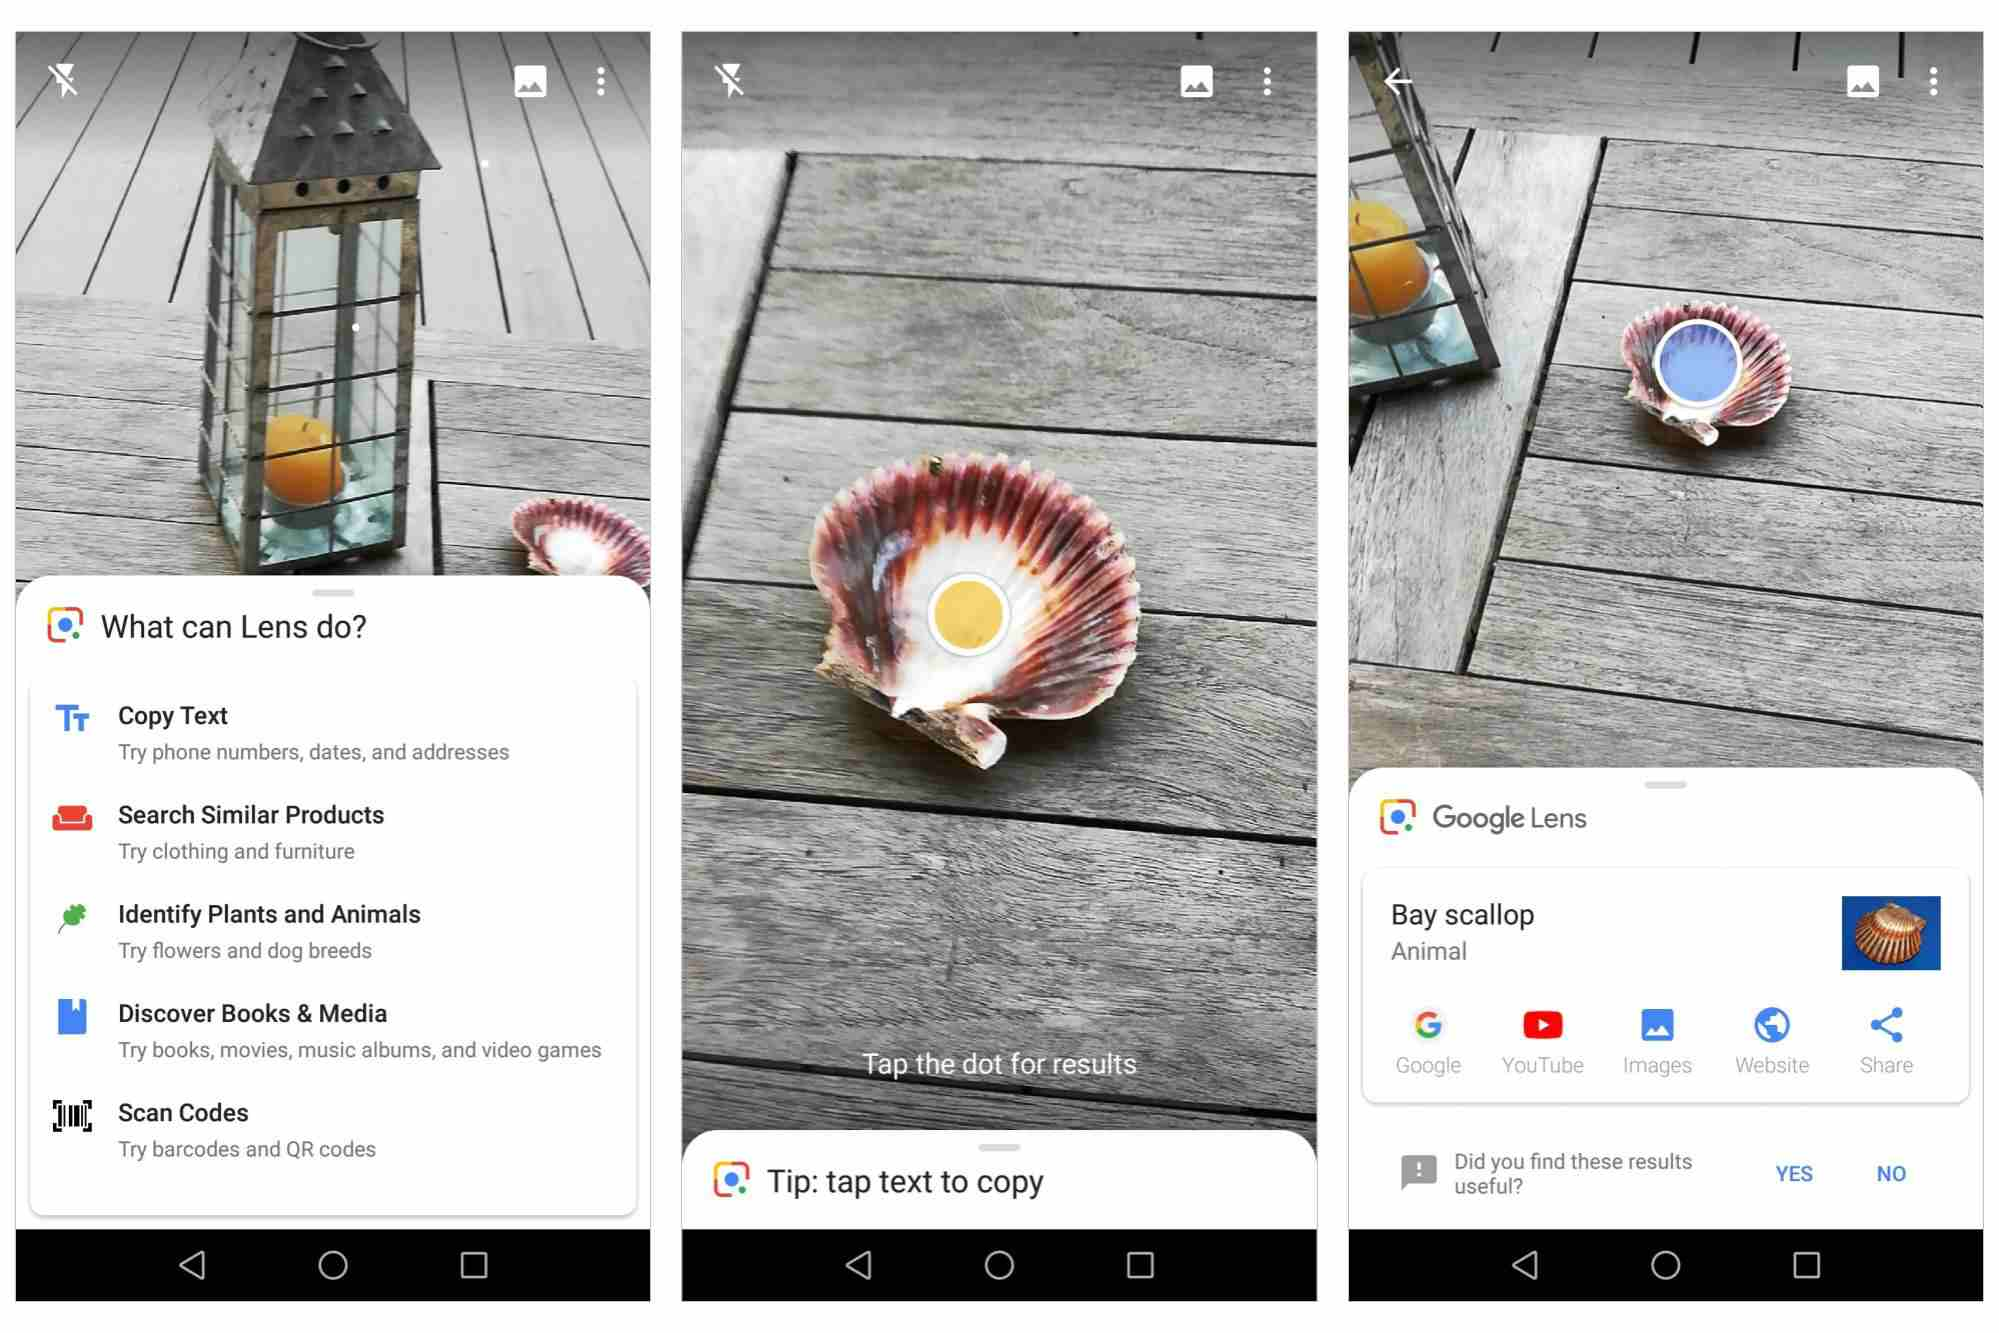 Google Lens, showing identification of a Bay scallop with the camera